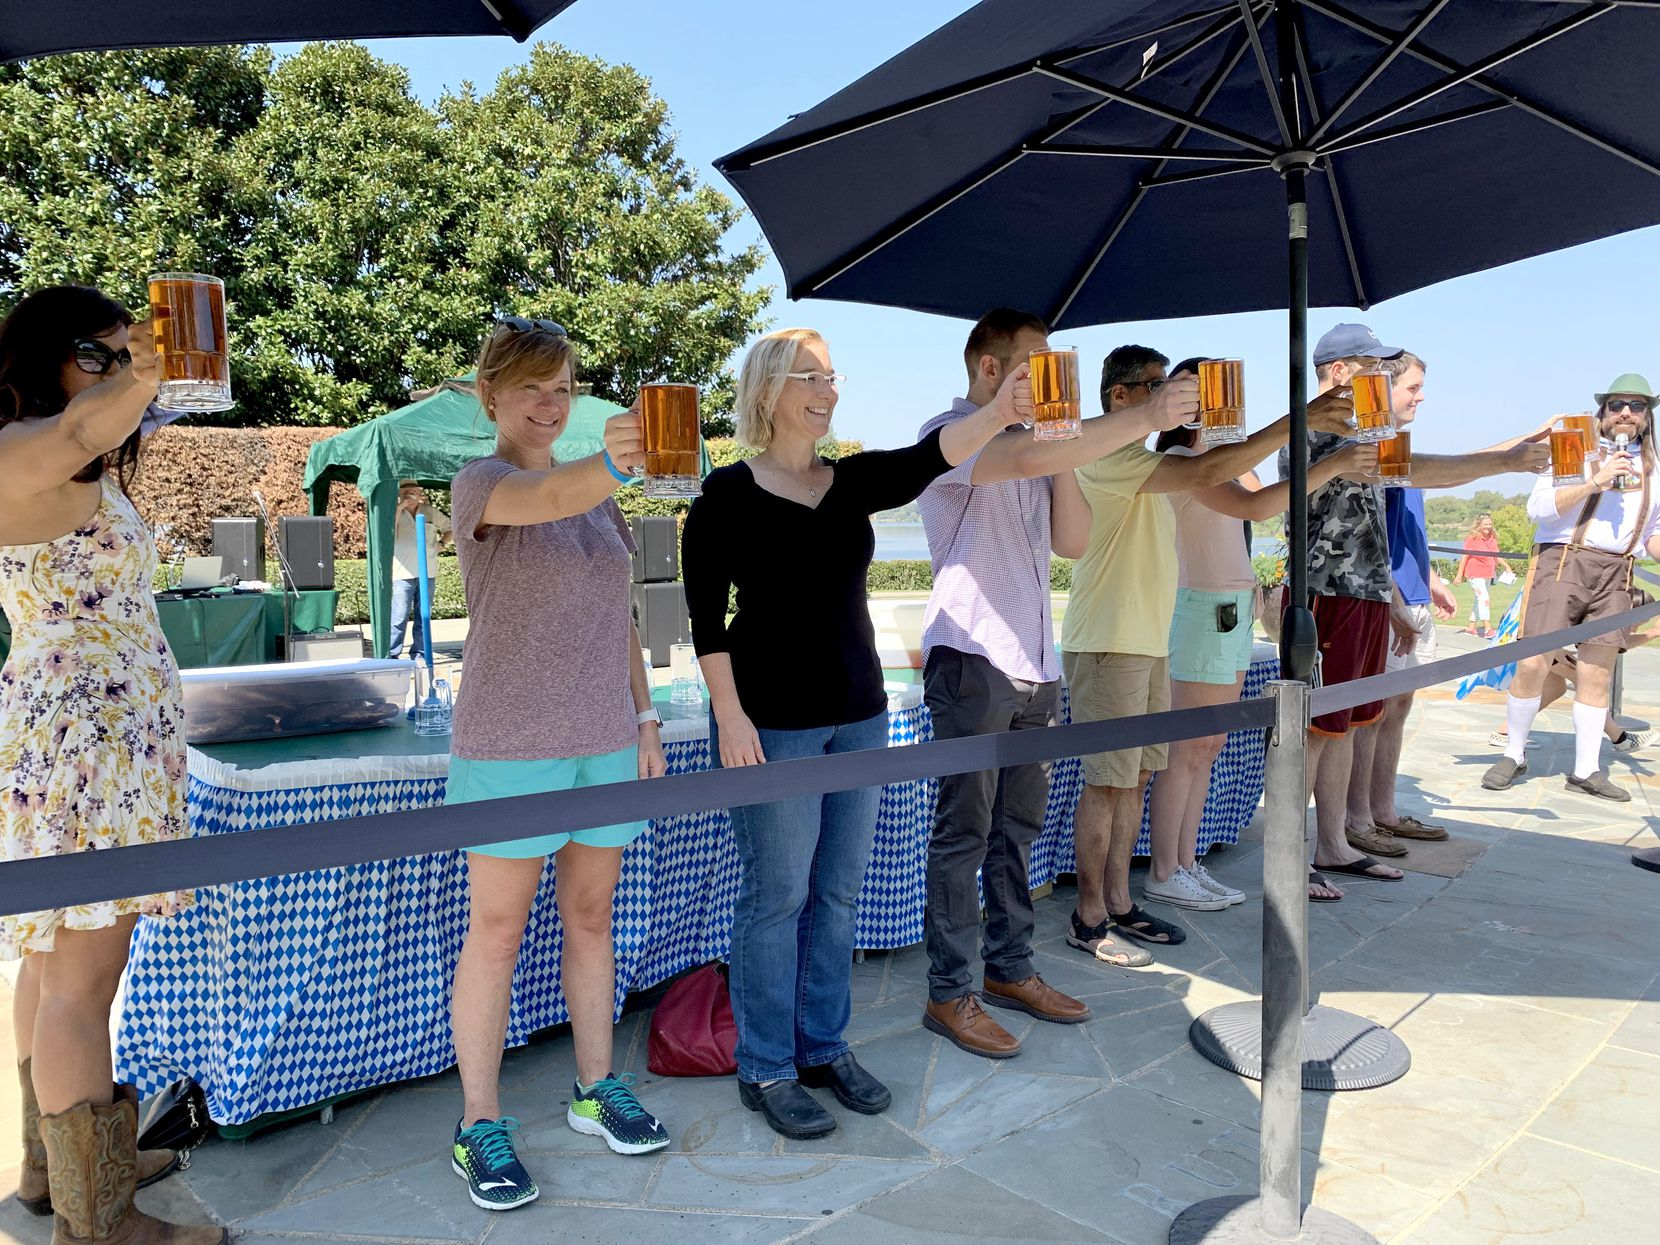 People participate in a stein-holding competition at the Dallas Arboretum's Oktoberfest event Oct. 5, 2019. This year's Oktoberfest event will be held Sept. 20, 2020, from 11 a.m. to 4 p.m.